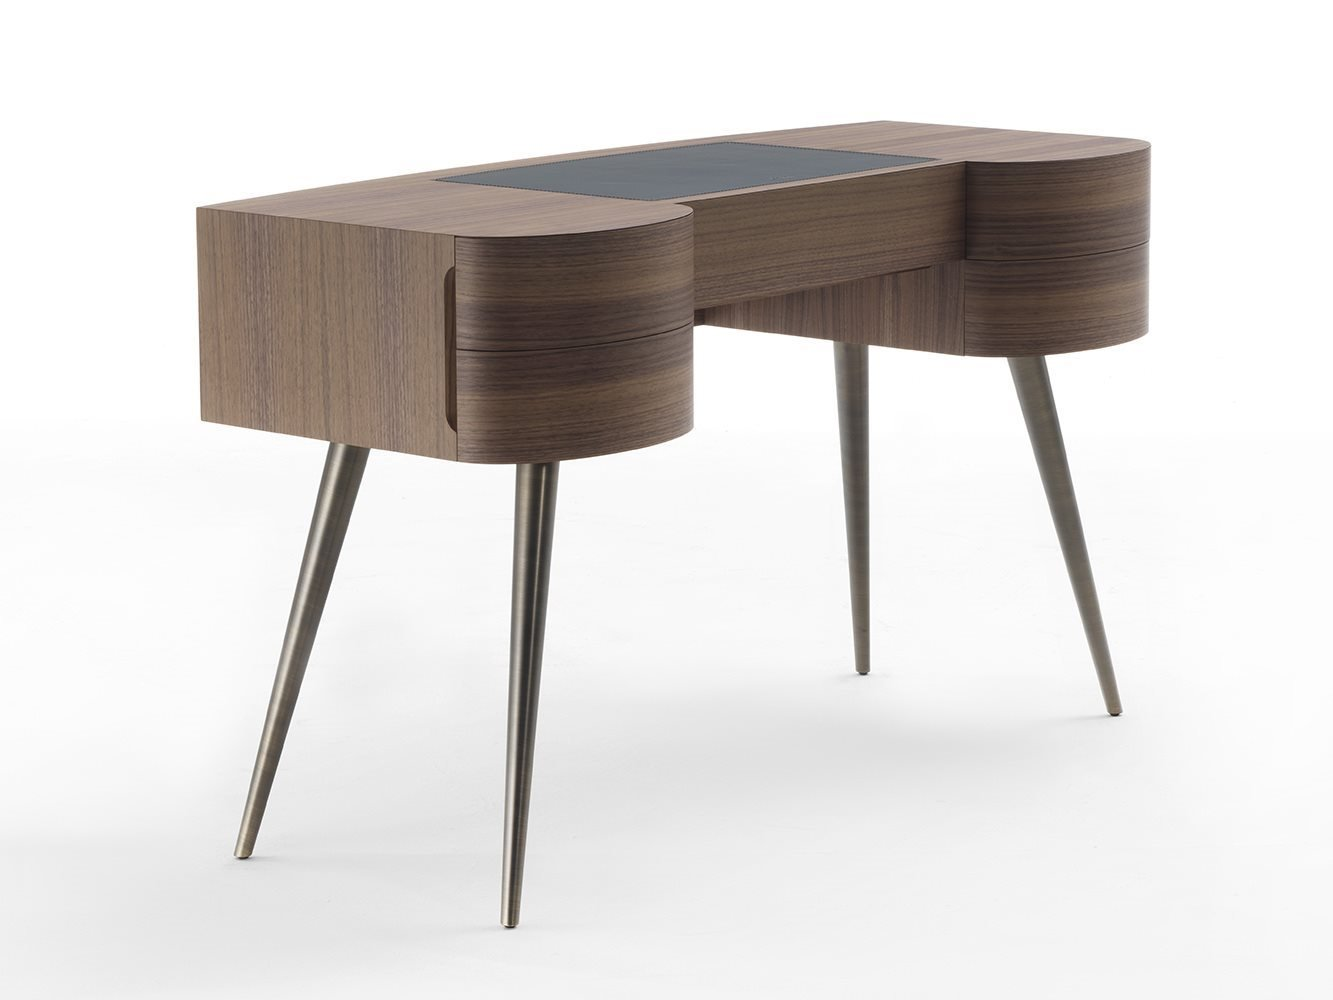 Micol Desk from Porada, designed by G. Azzarello